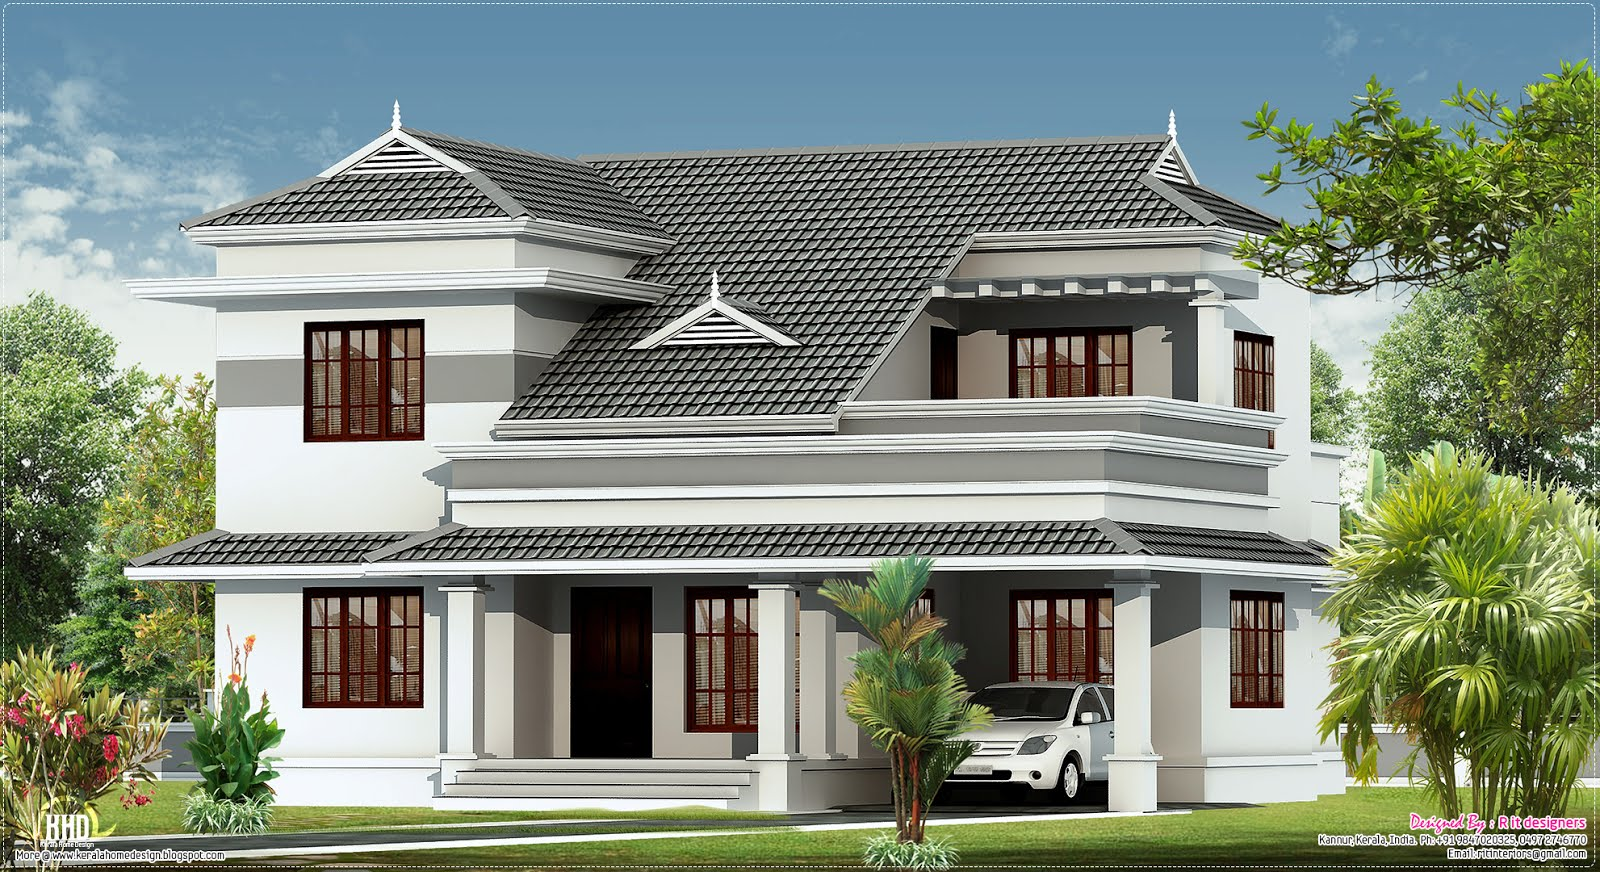 New villa design in 2250 kerala home design and for New design home plans